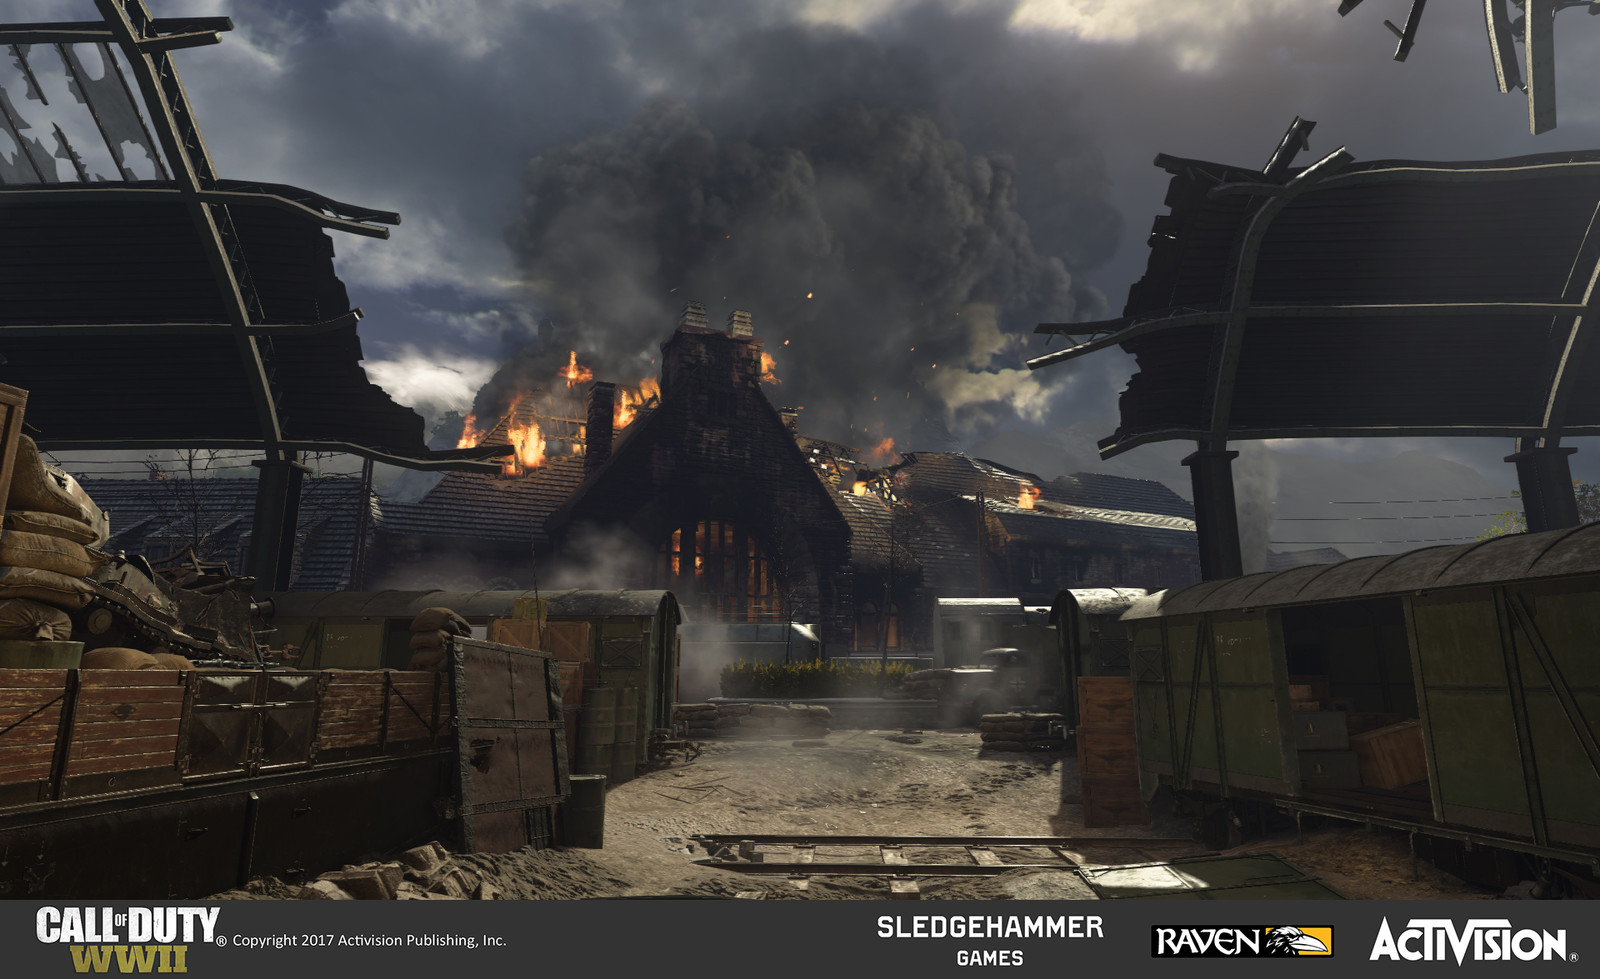 Player path leading to the third objective in this map, which has the main train station as a backdrop. This serves as an establishing shot for the train station building, created with a combination of uniquely created and pre-existing models/materials.